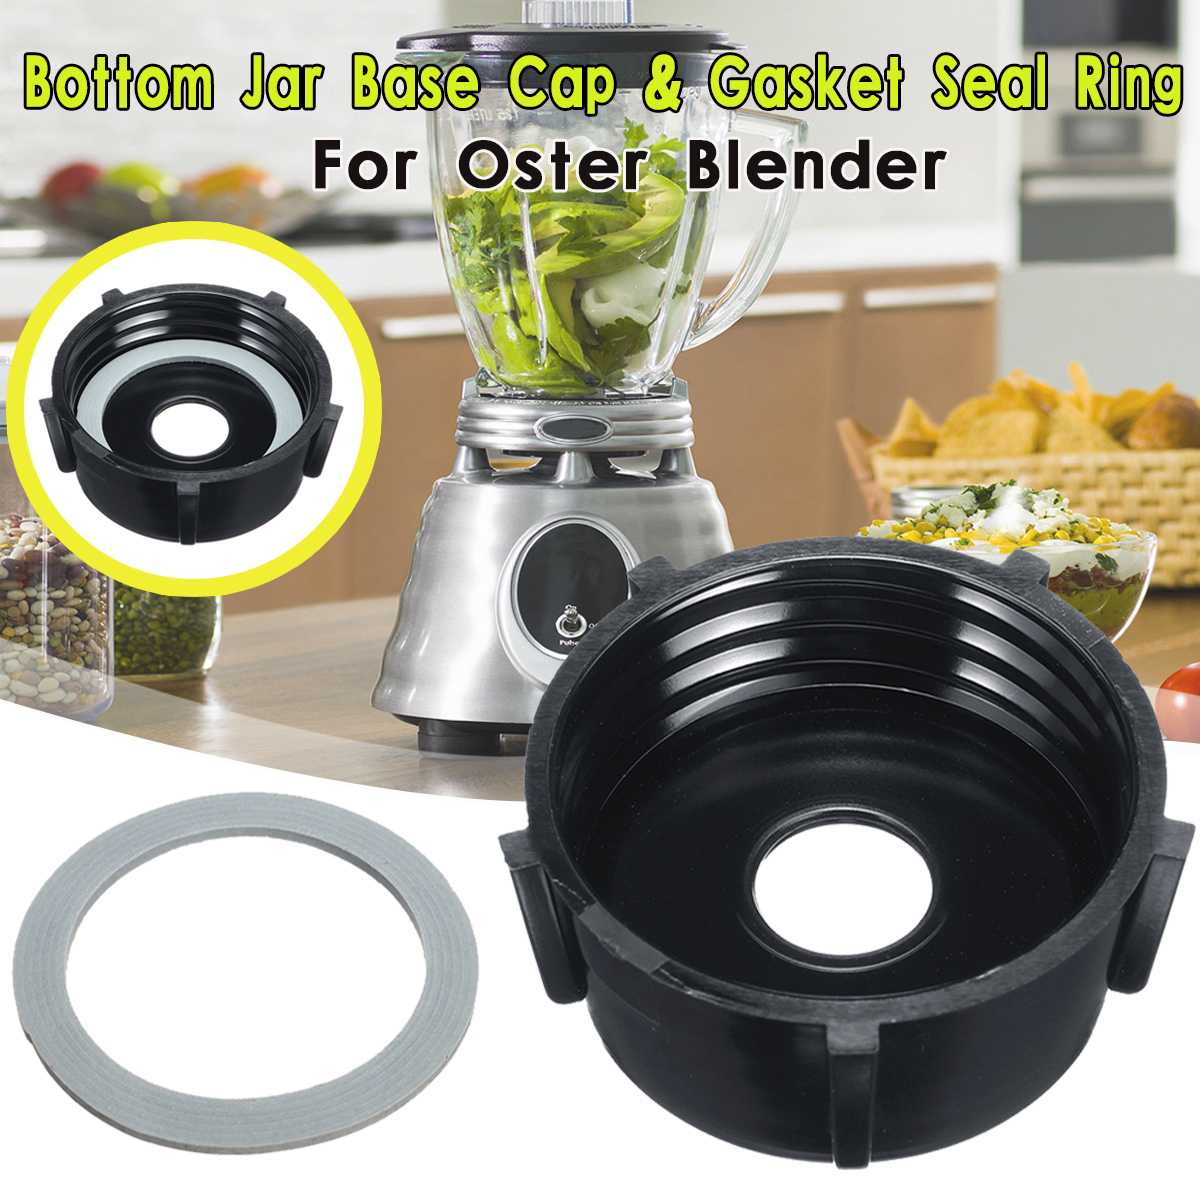 Home Appliances Bottom Jar Base With Cap Gasket Seal Ring For Oster Blender Replacement Part Juicer Spare Assembly Kitchen Appliance Parts Home Appliance Parts